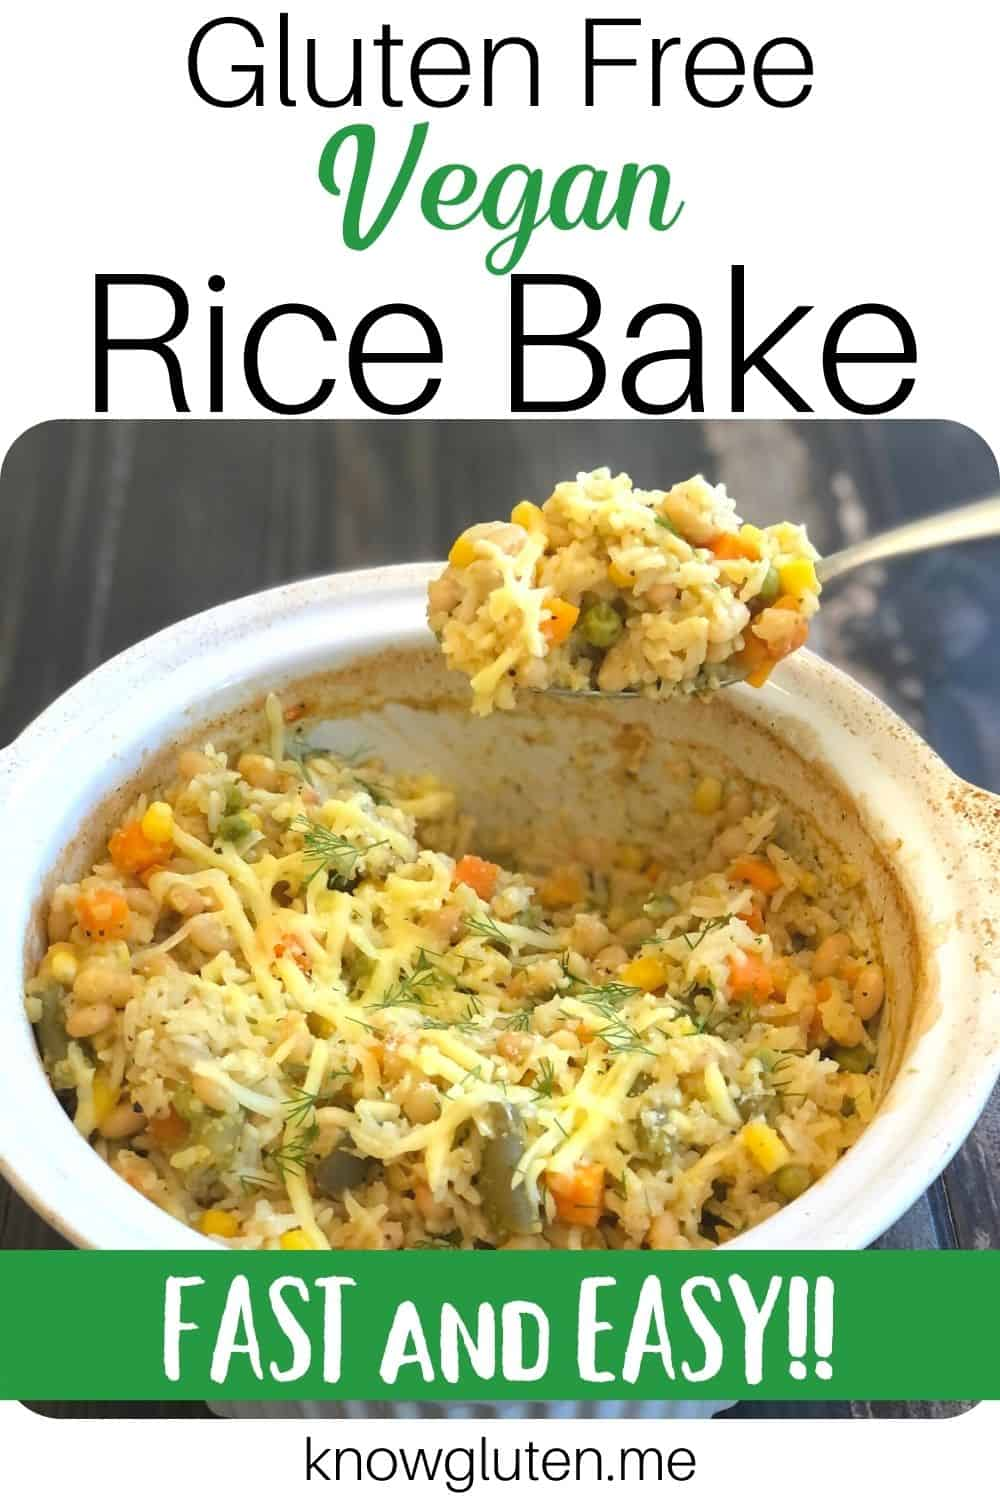 Vegan Rice Bake being scooped out of a white baking dish with a metal serving spoon.